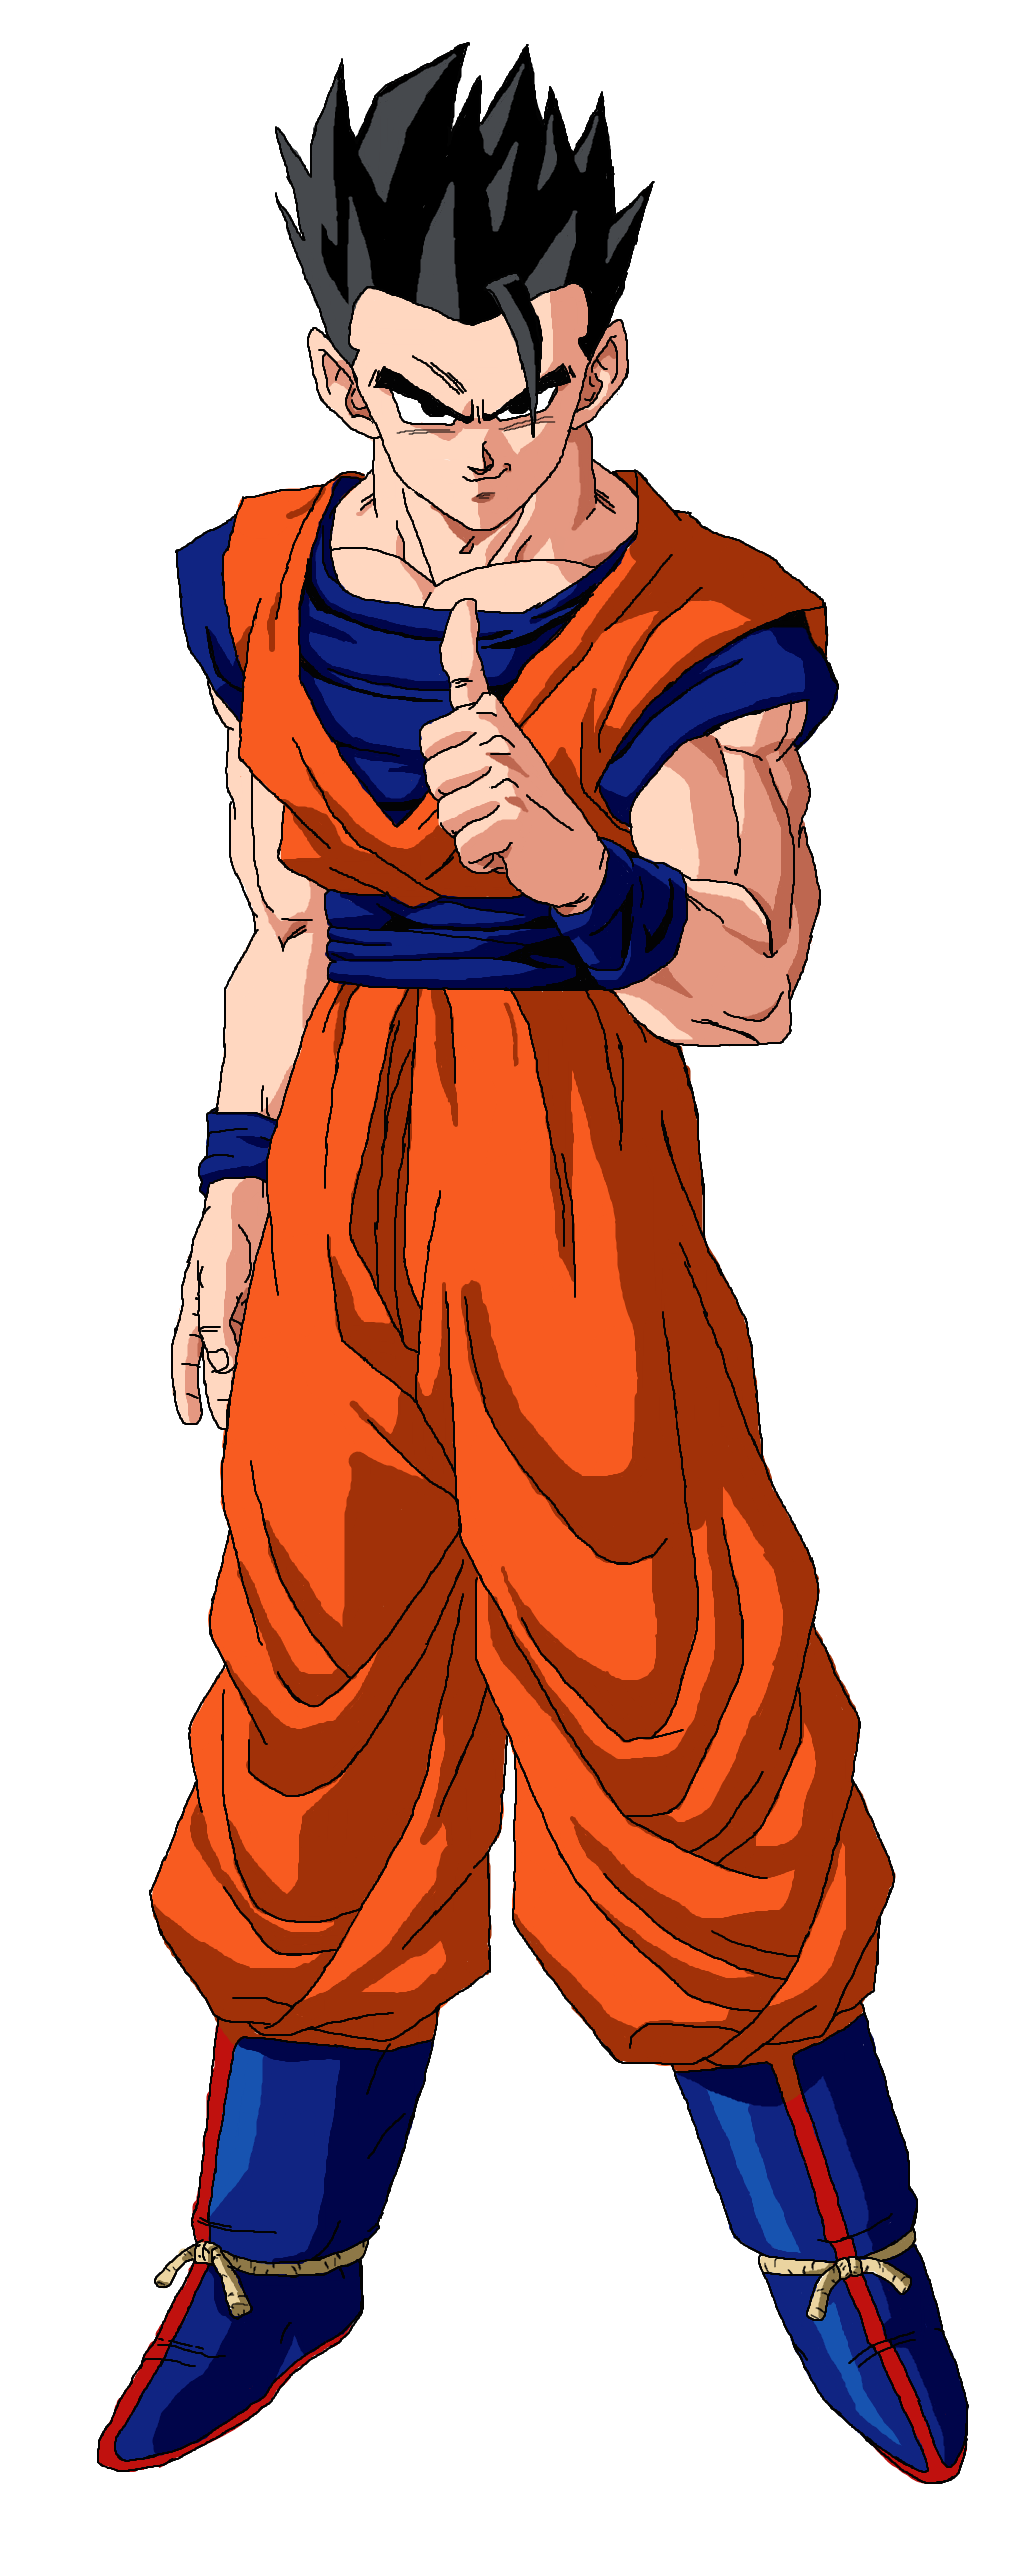 Ultimate gohan vs kid buu post by all for one on aug 13 2015 at 1254pm altavistaventures Choice Image